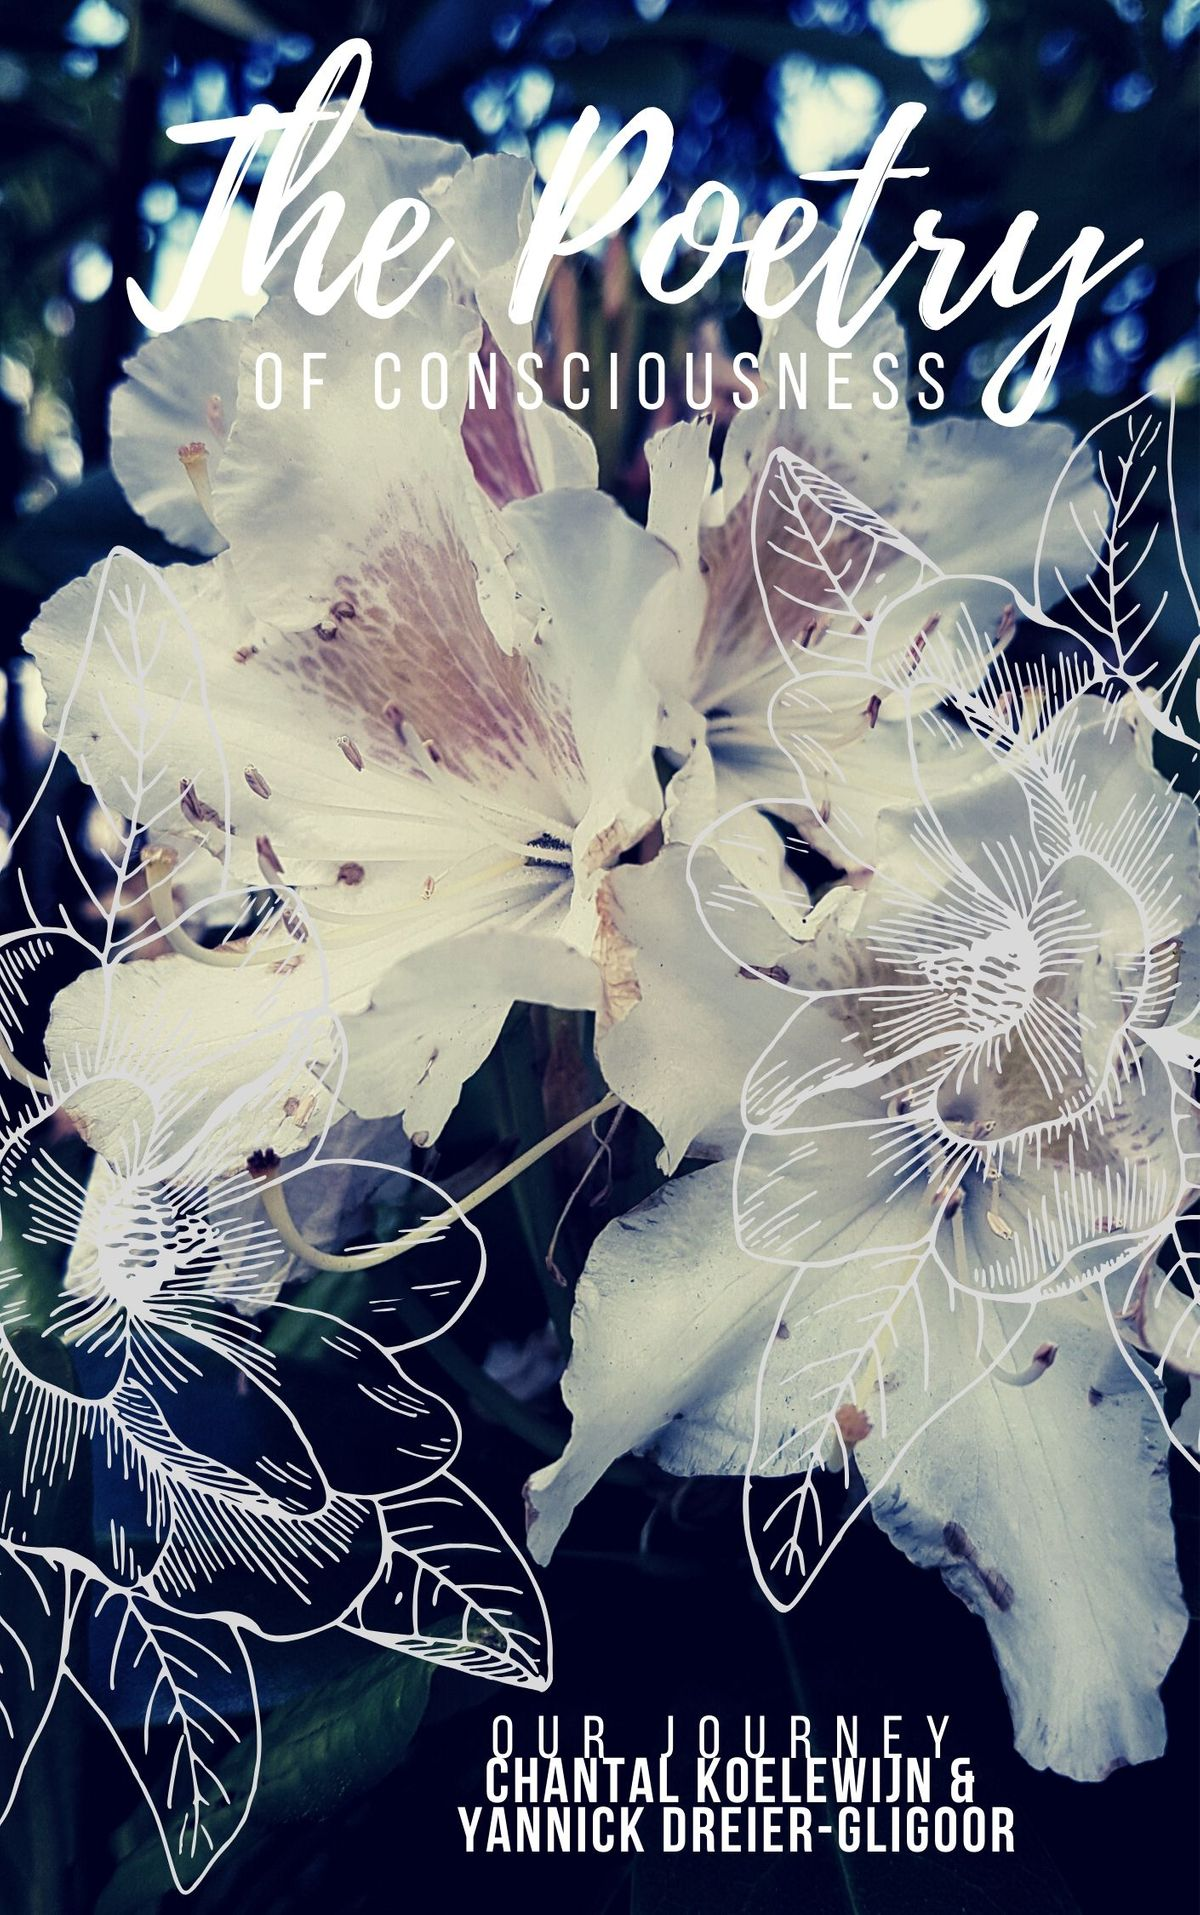 Copy of of consiosness (2)